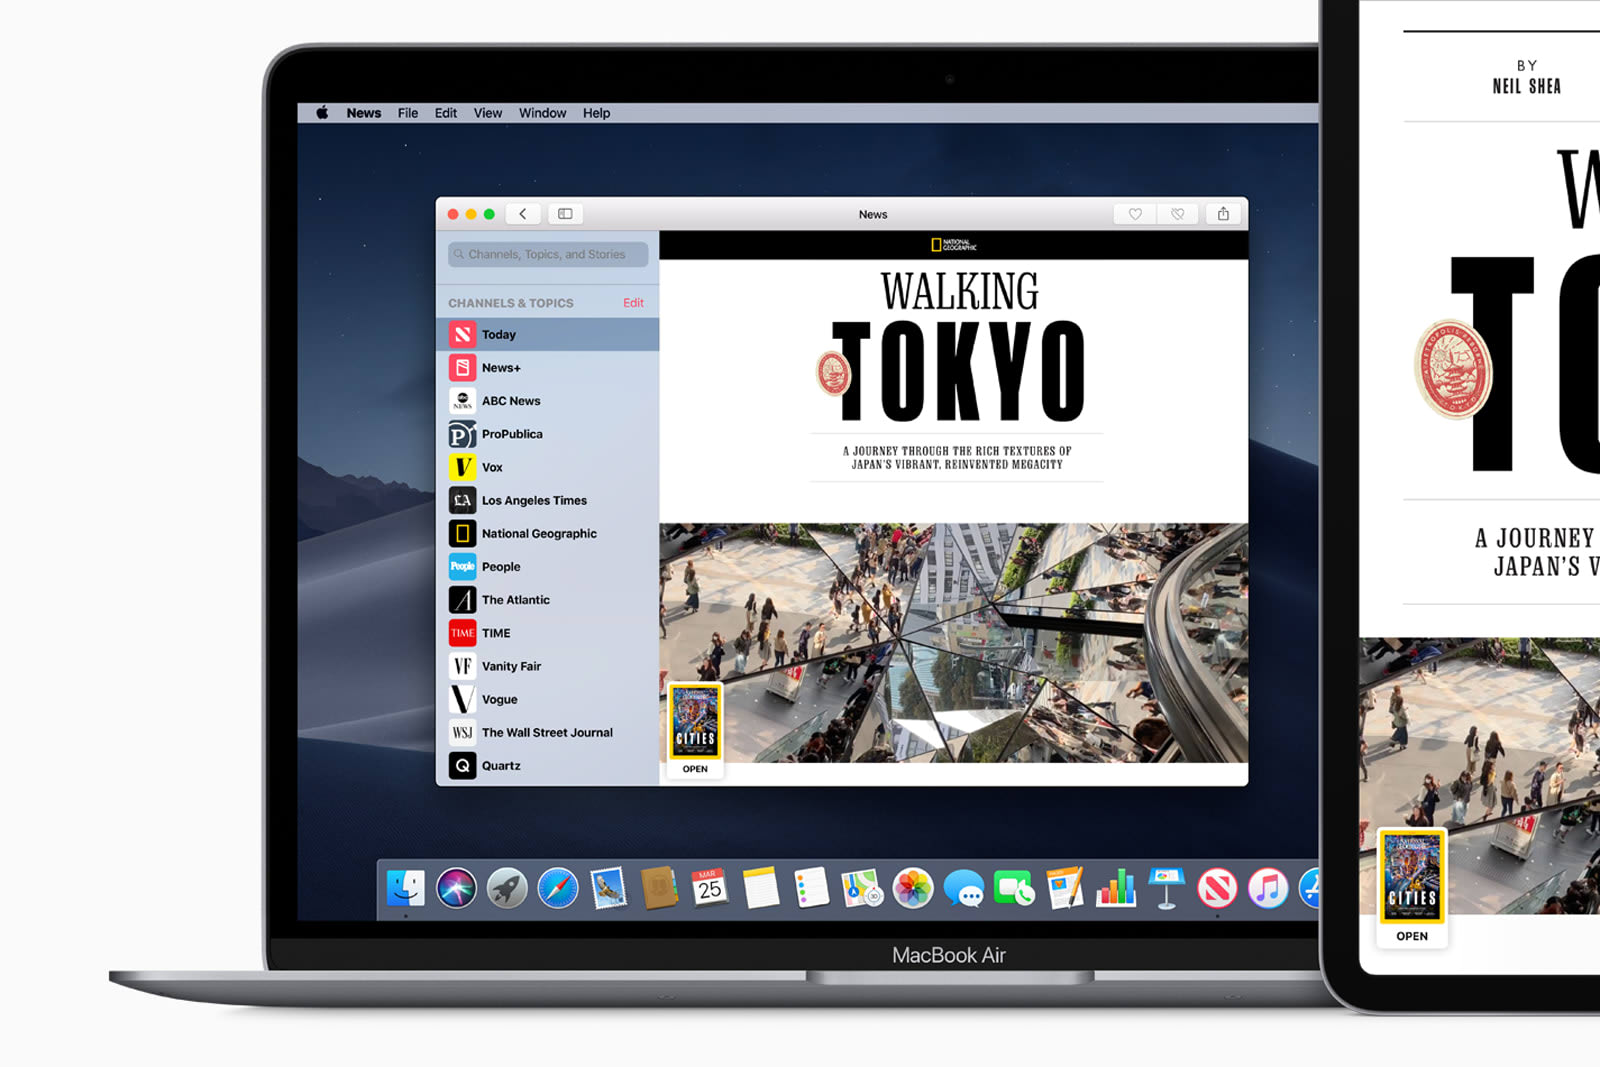 macOS update adds support for Apple's News+ subscription service